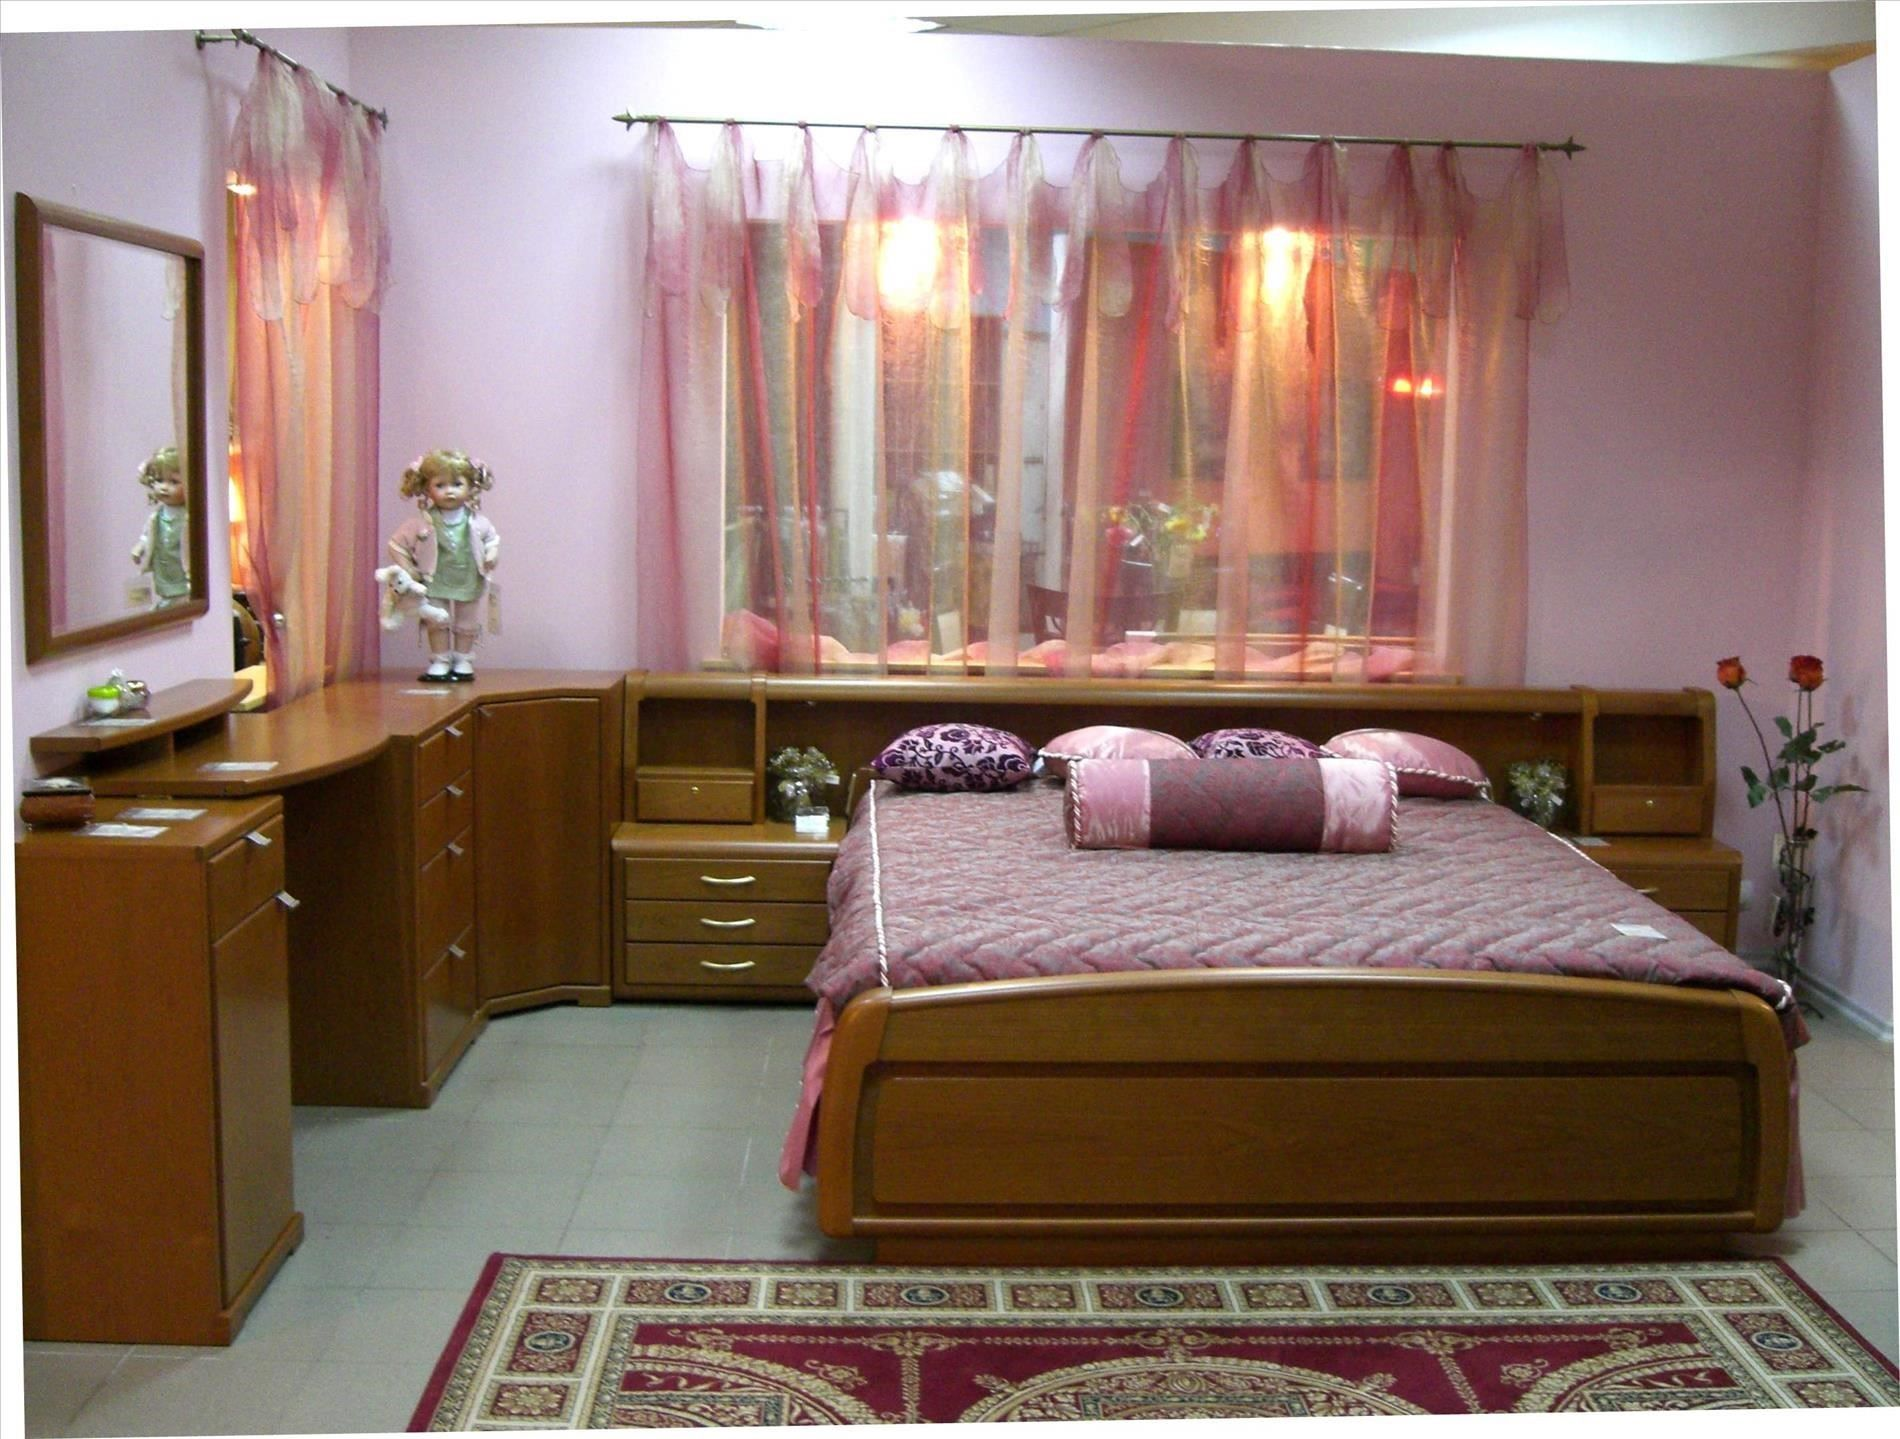 Small High Impact Decor Ideas: Simple Bedroom Design For Middle Class Family